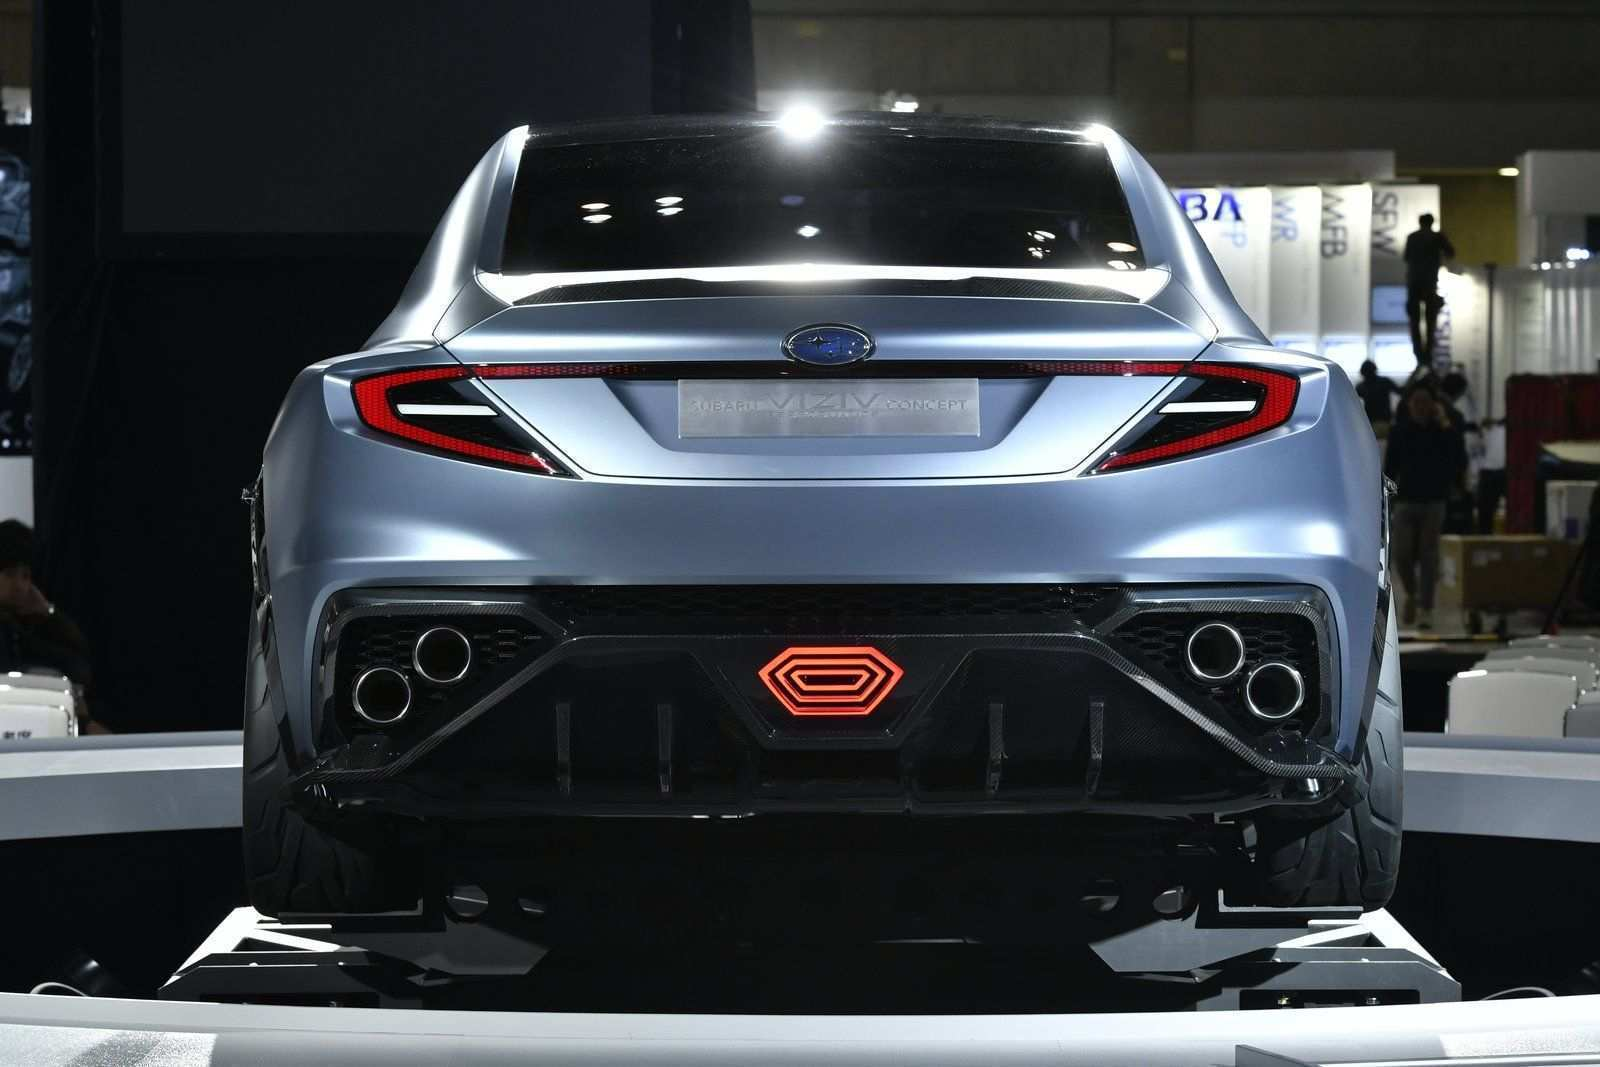 17 Concept of 2020 Subaru Wrx Prices for 2020 Subaru Wrx